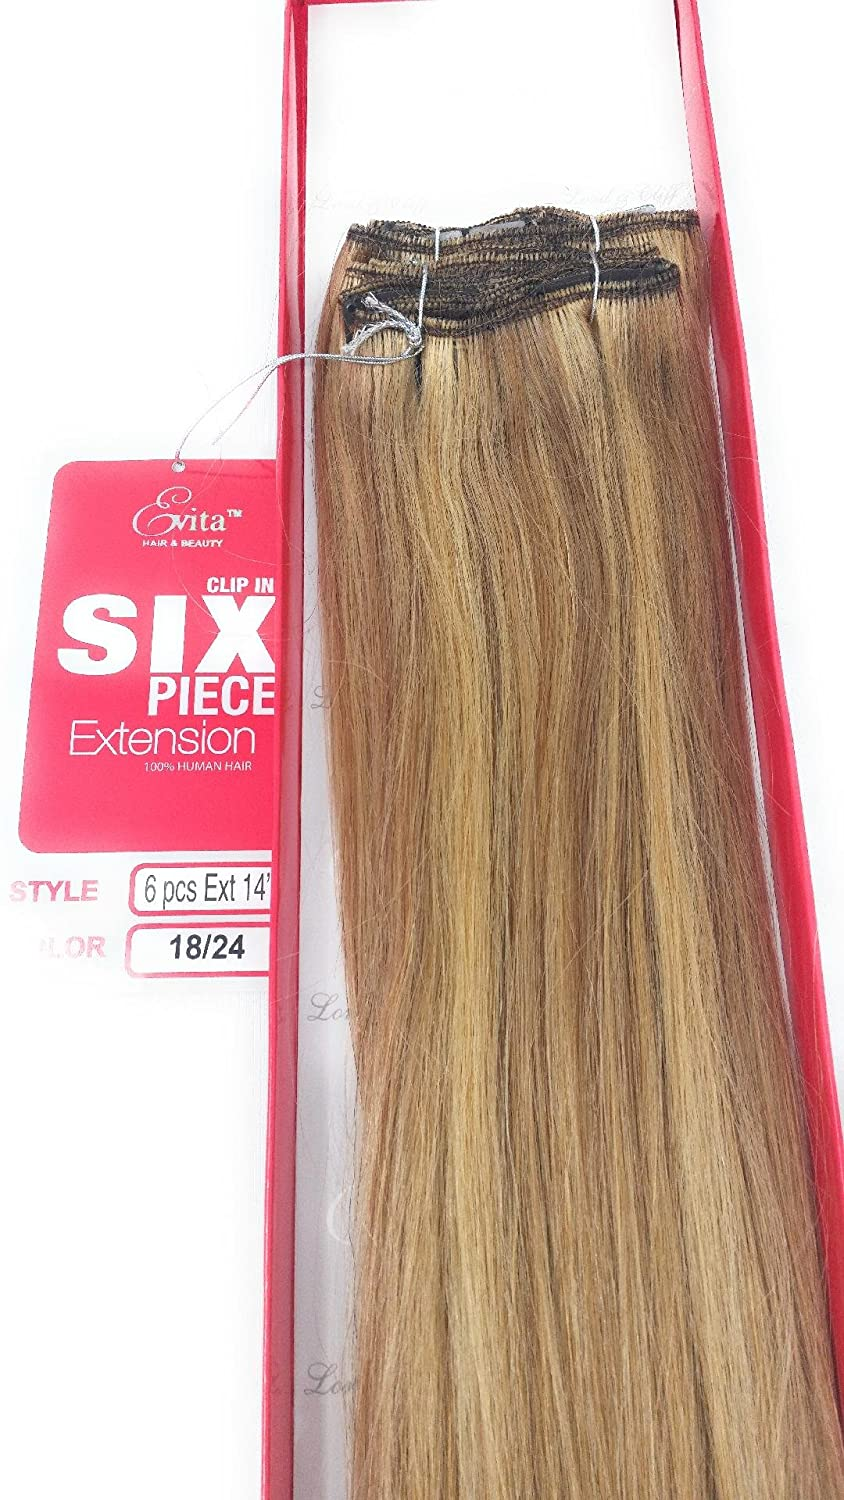 Amazon Lord Cliff Evita Six Piece Straight Human Hair Clip In